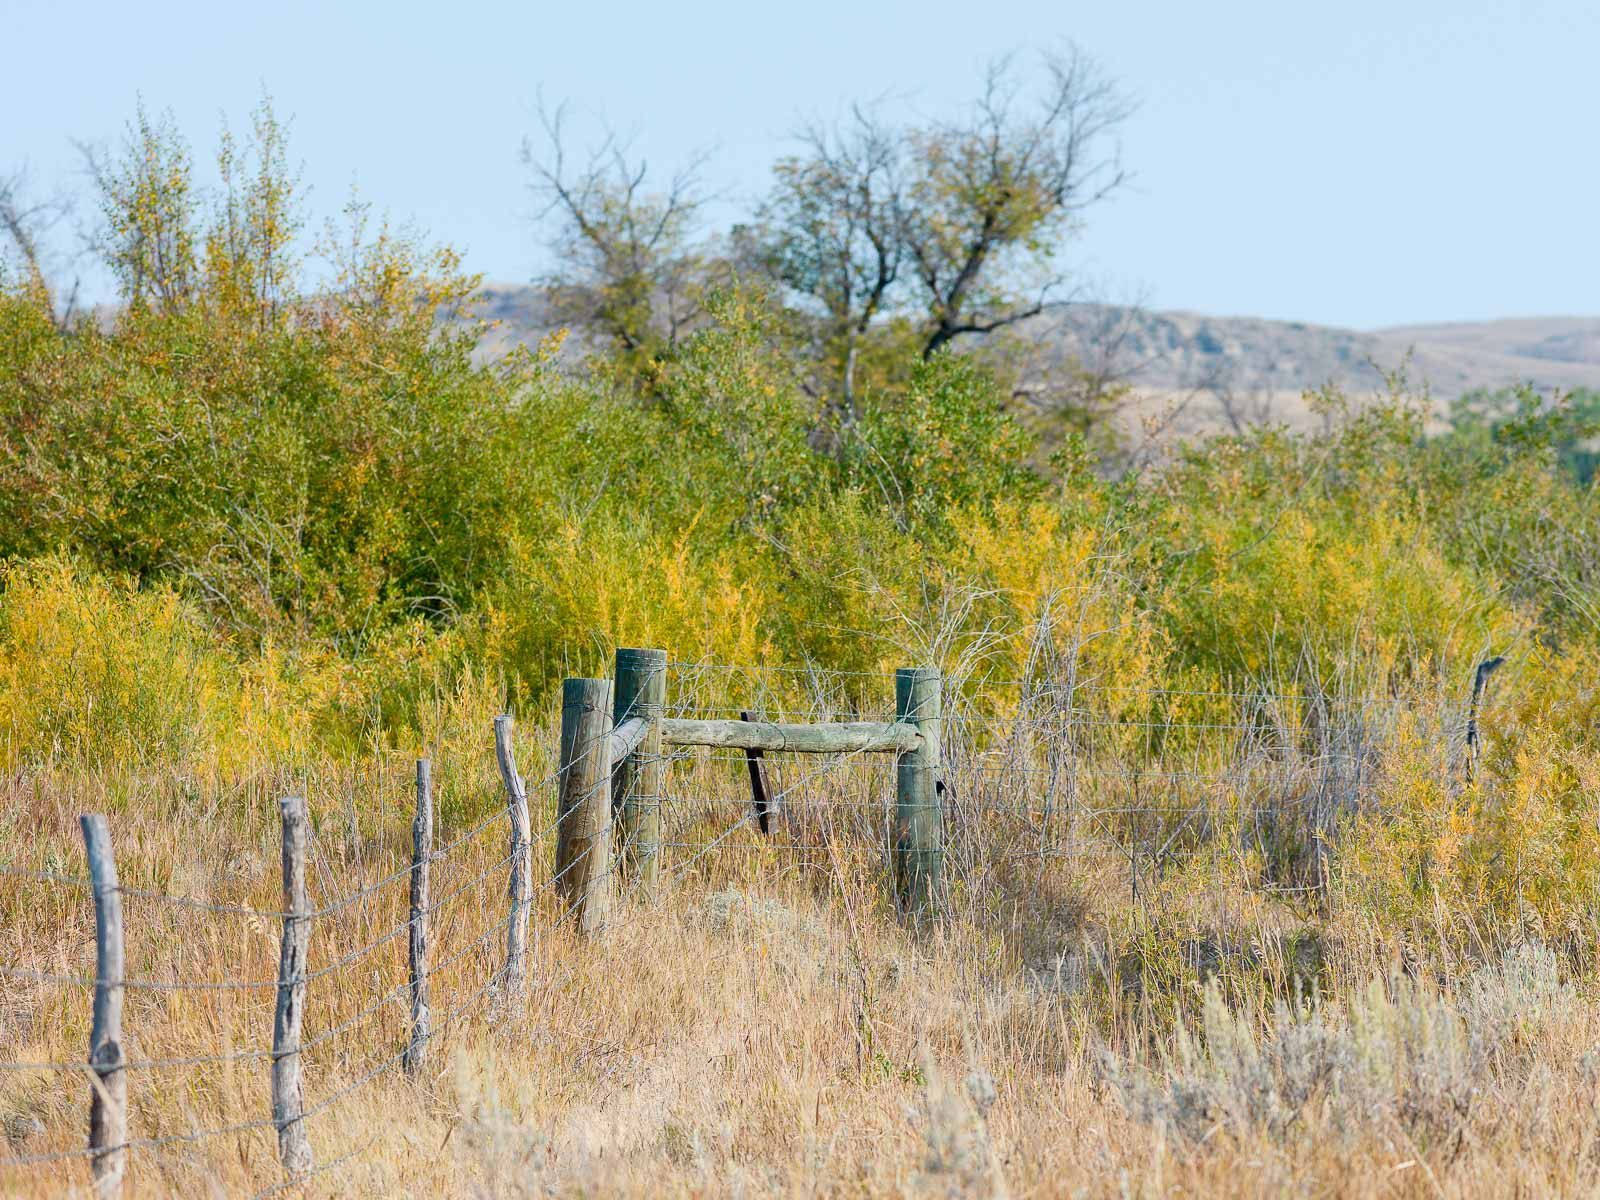 Fences and Brush on a Wyoming Ranch